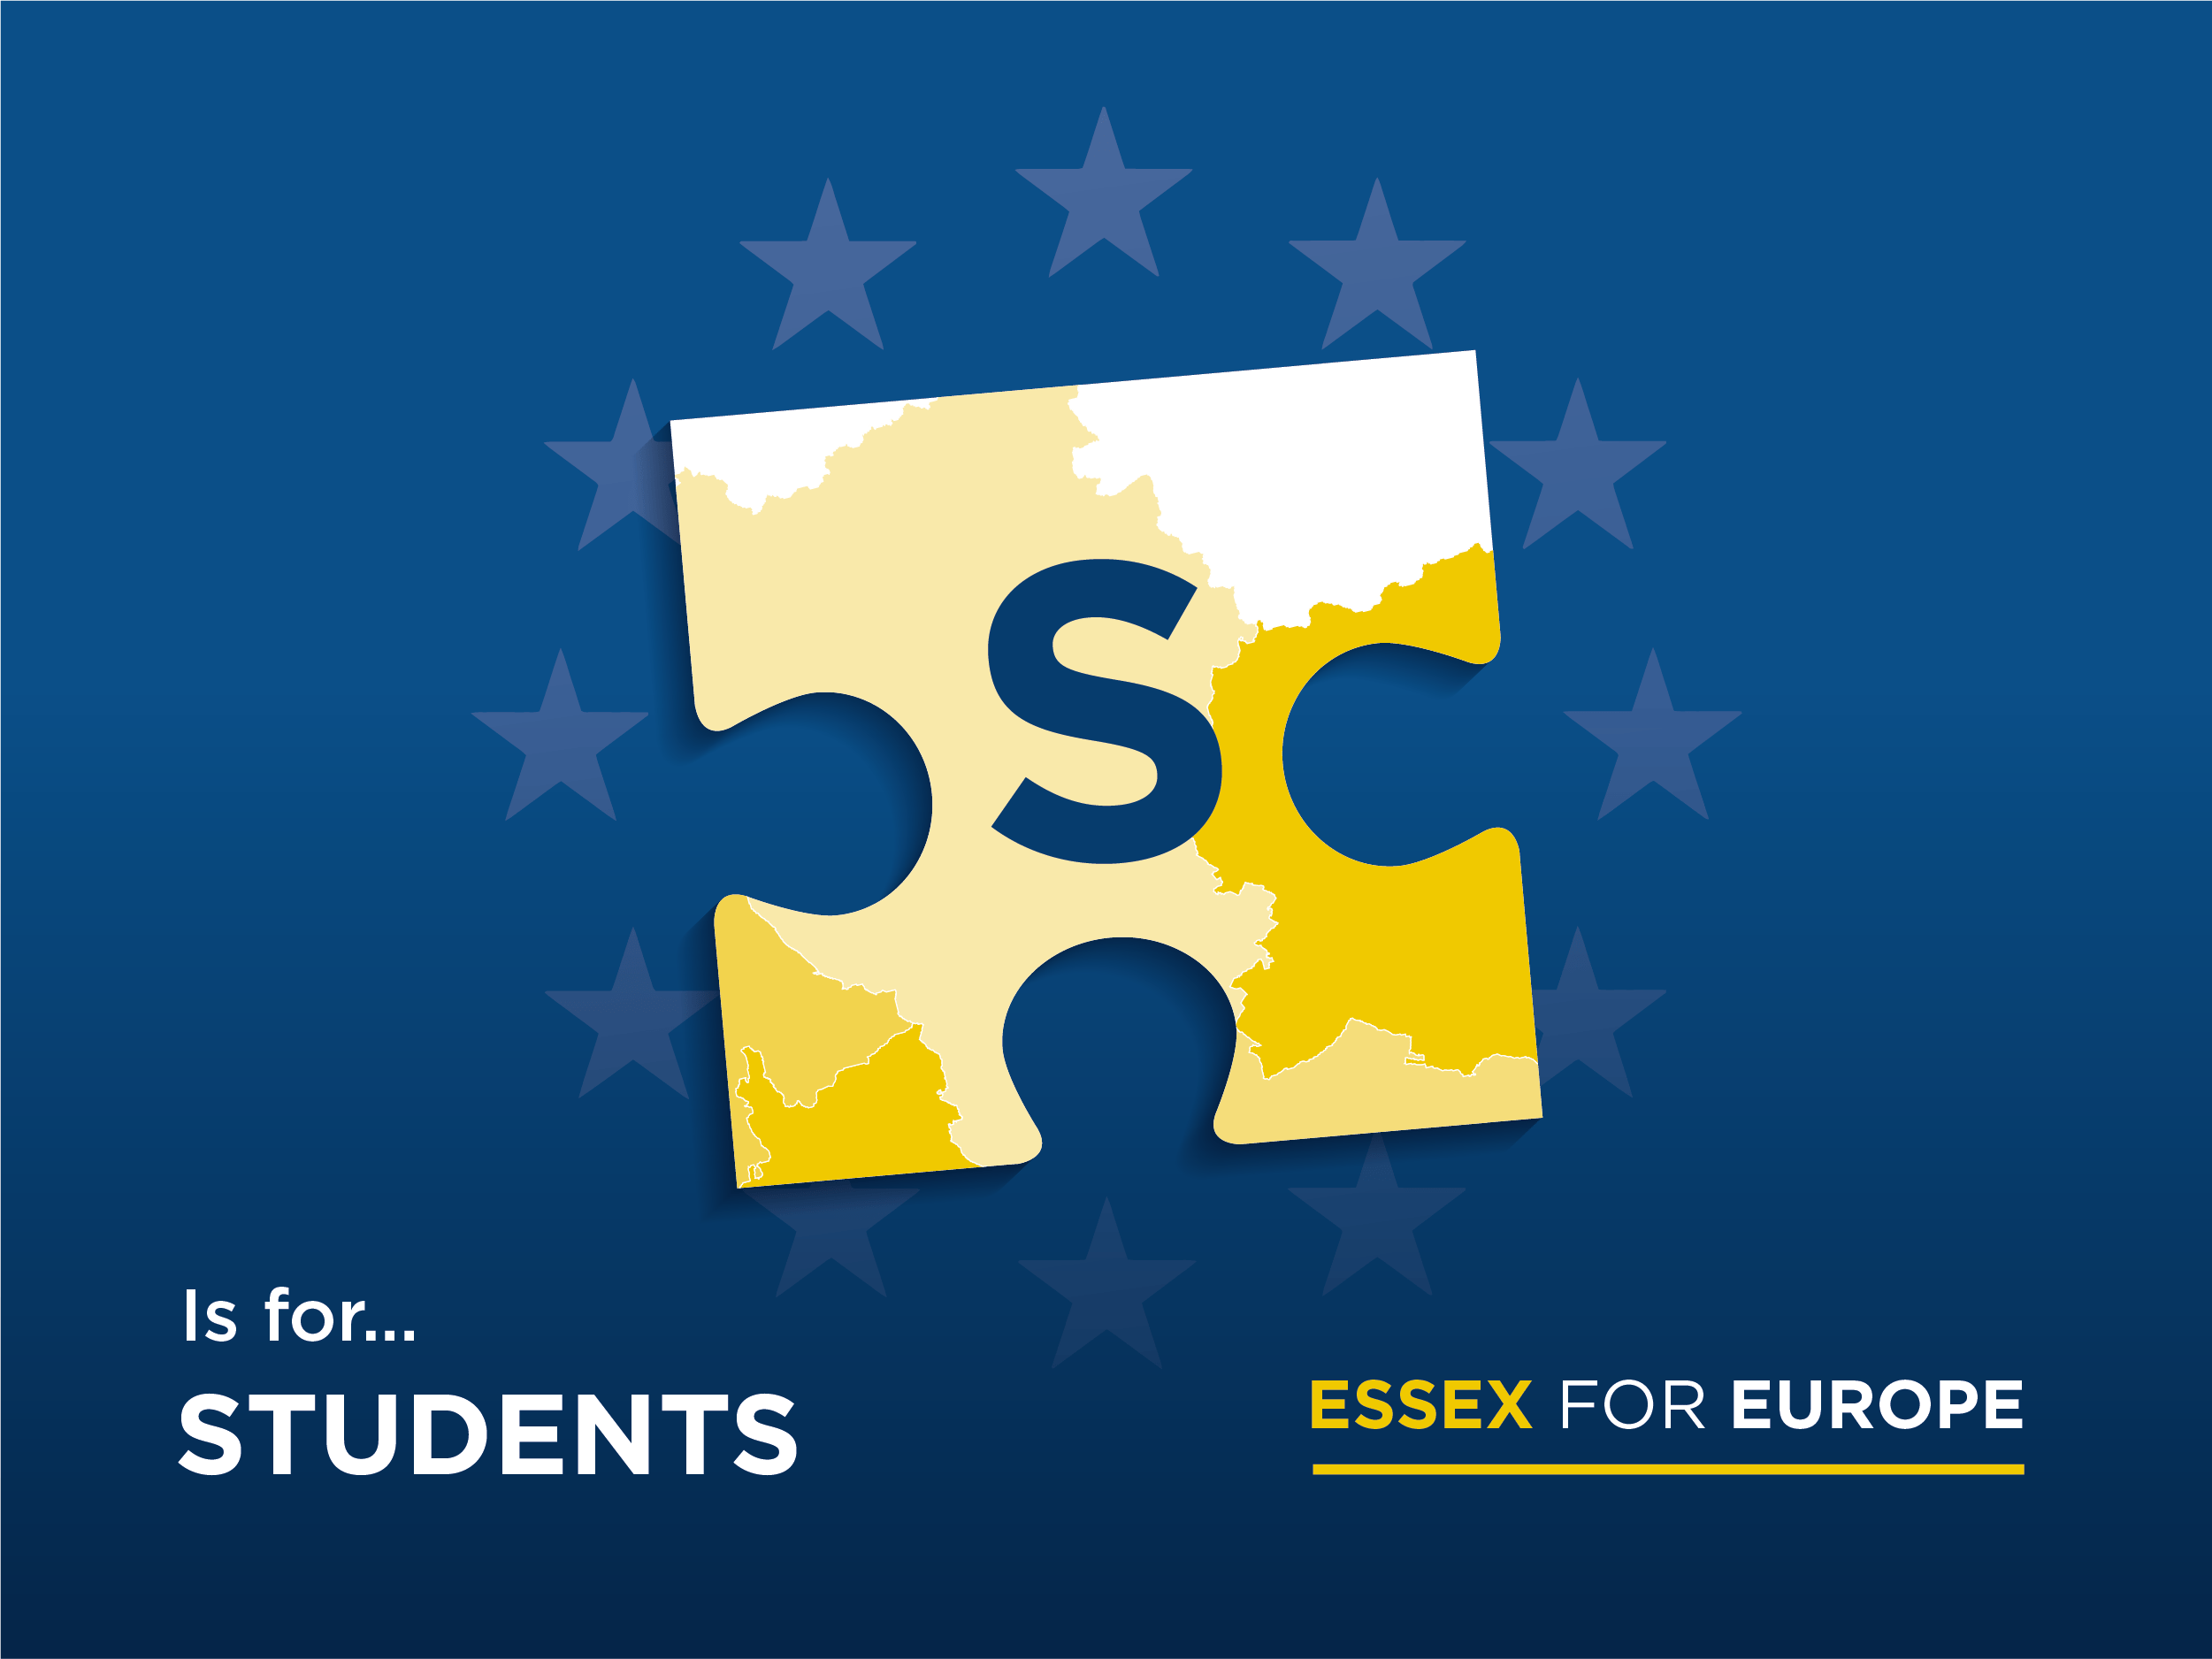 Essex for Europe - what does brexit mean for students